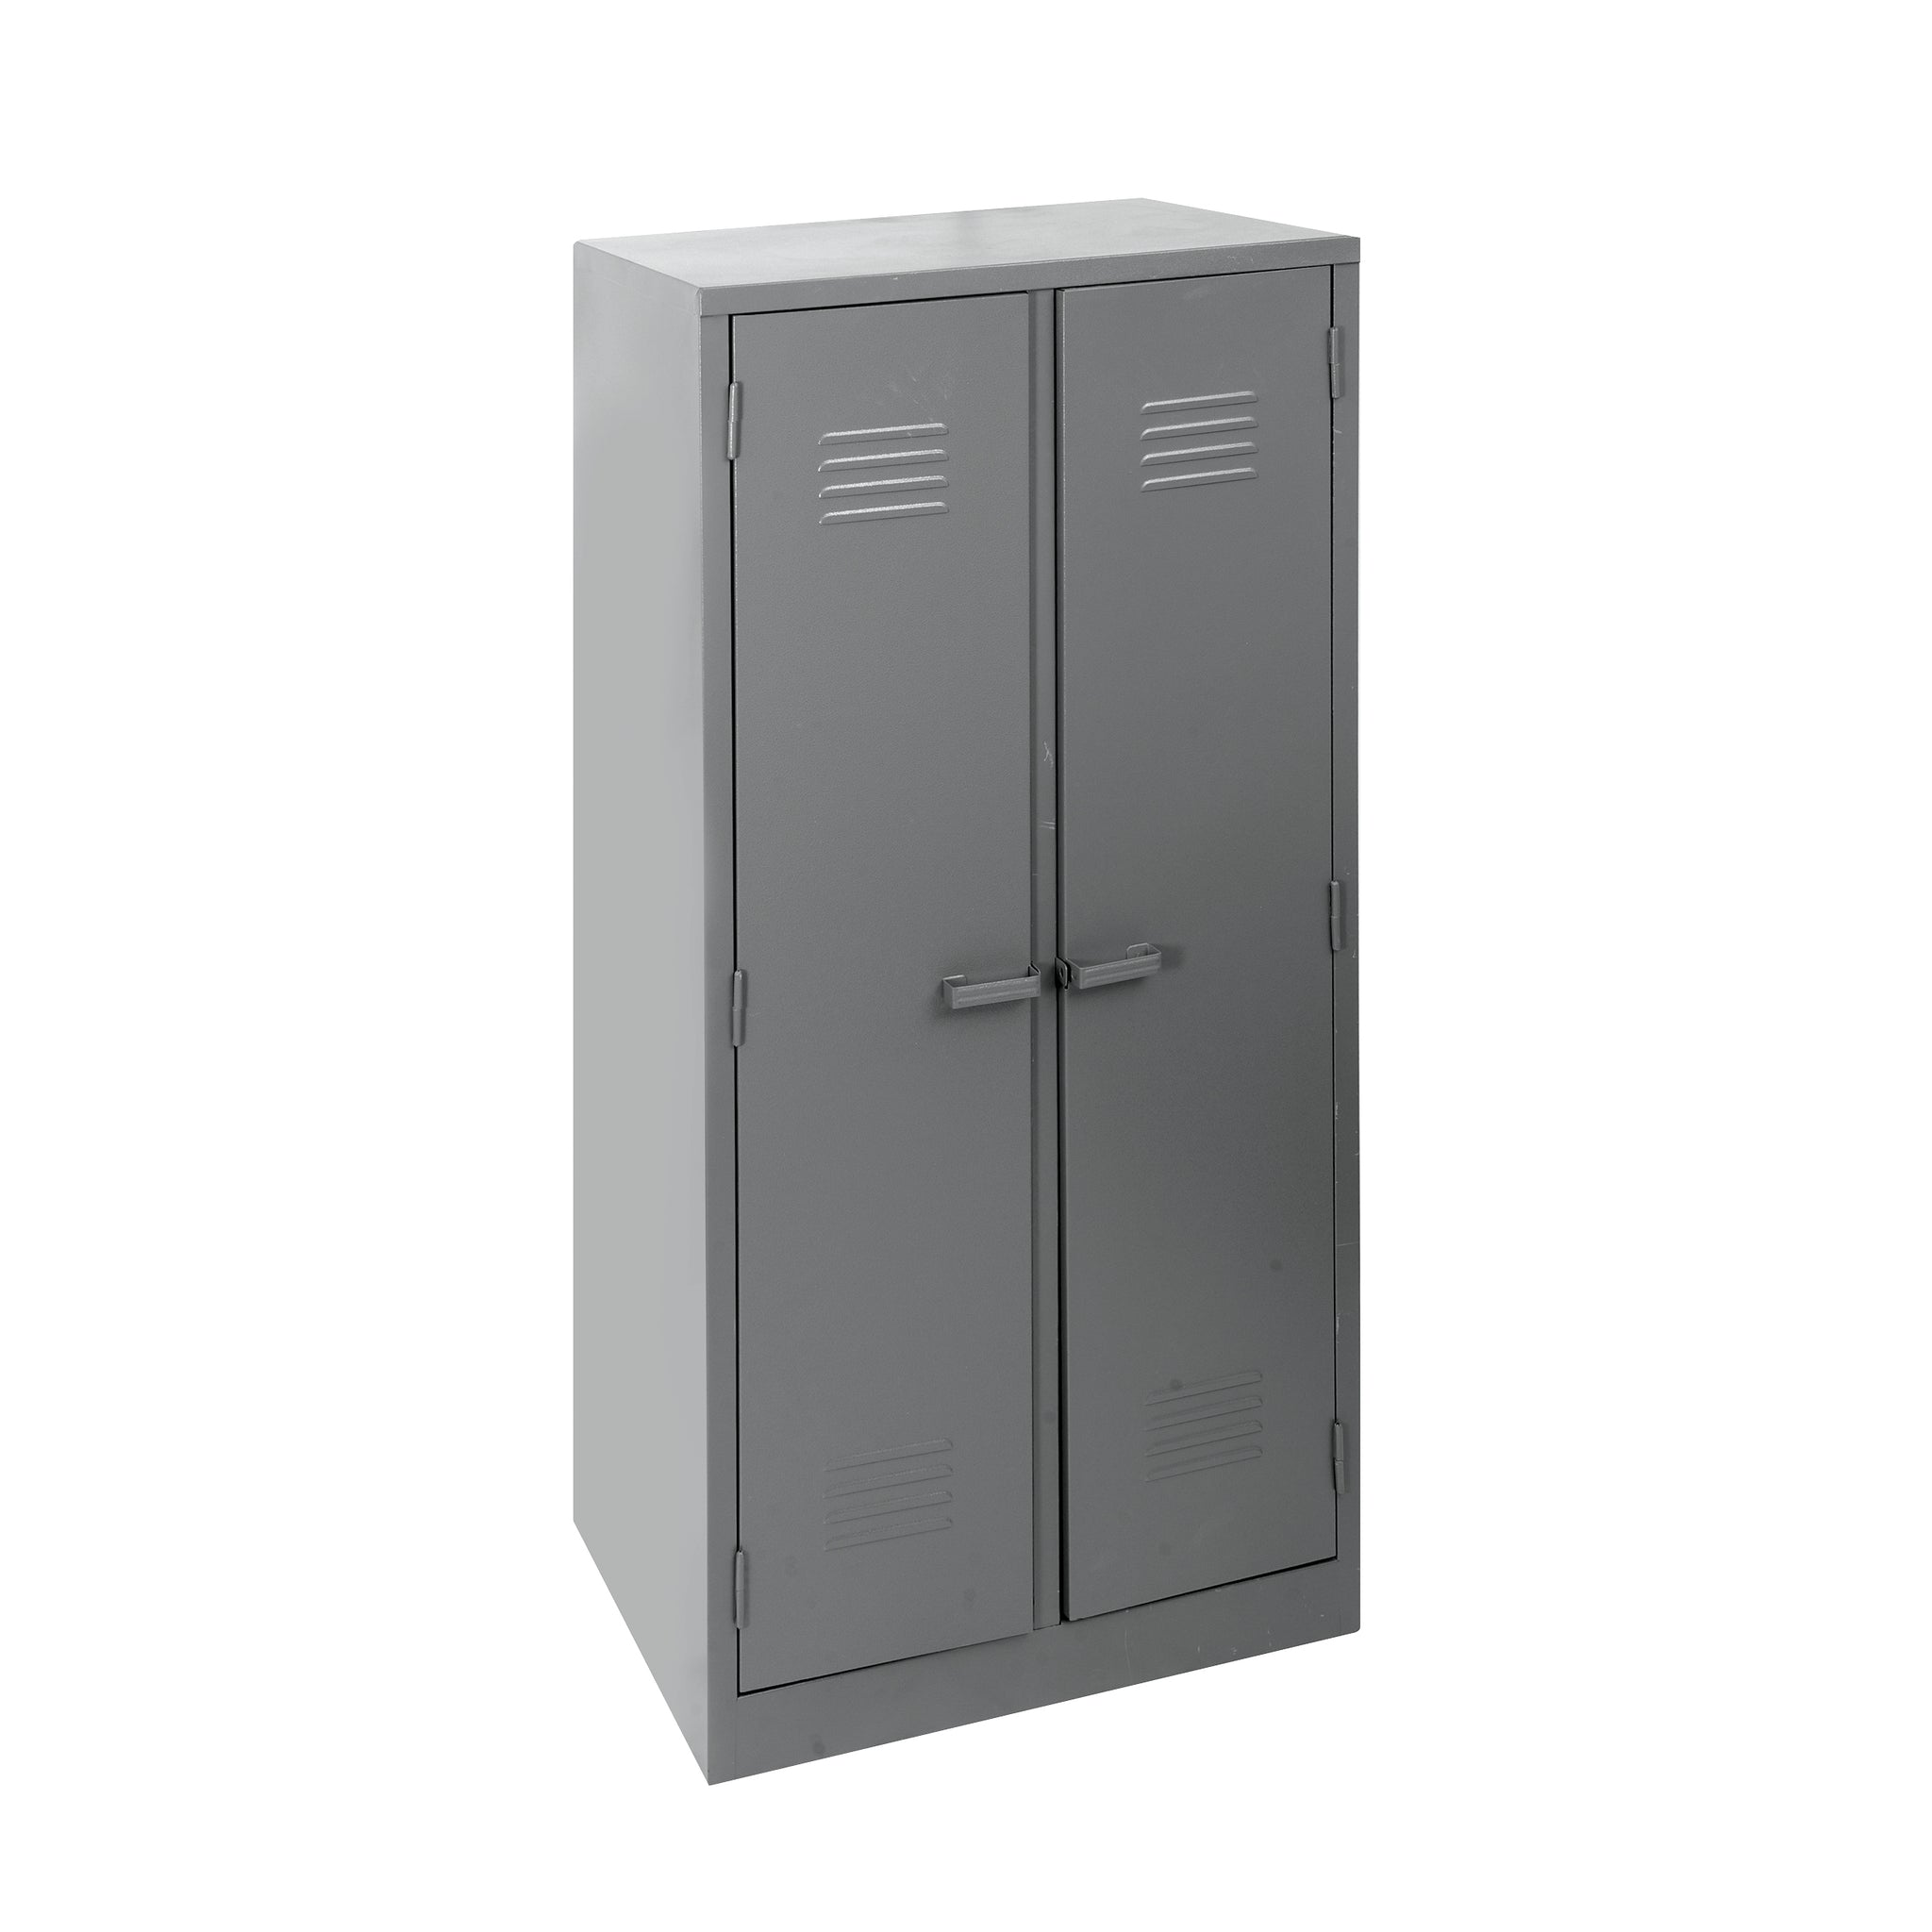 Hedcor Hostel Locker Co-Joined